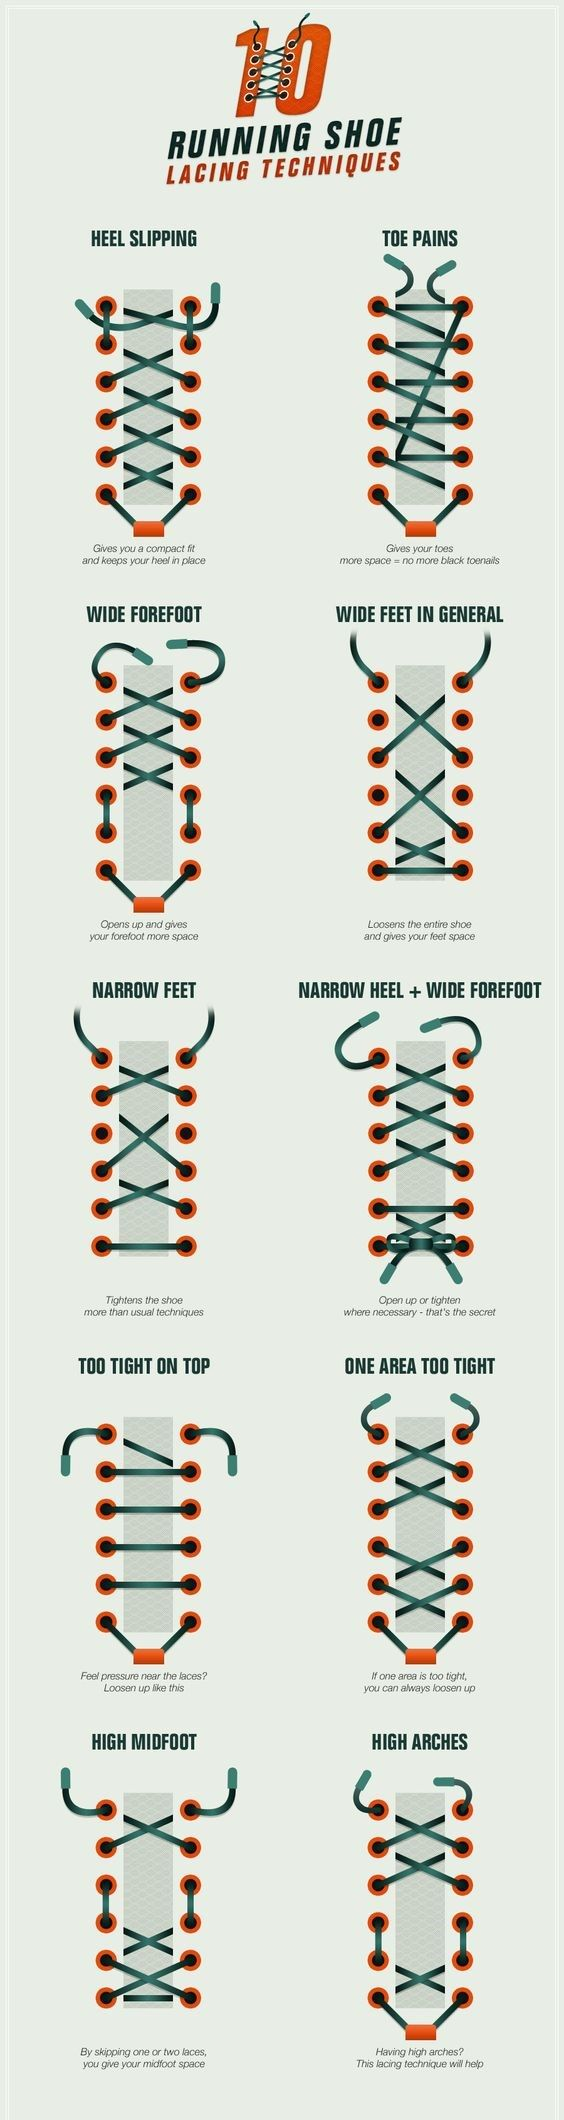 This is ultimate shoe lacing techniques that will help you improve your run- Shoe Lacing Technique #Running #Runners #RunningTips #FitLife #DIY #Hack